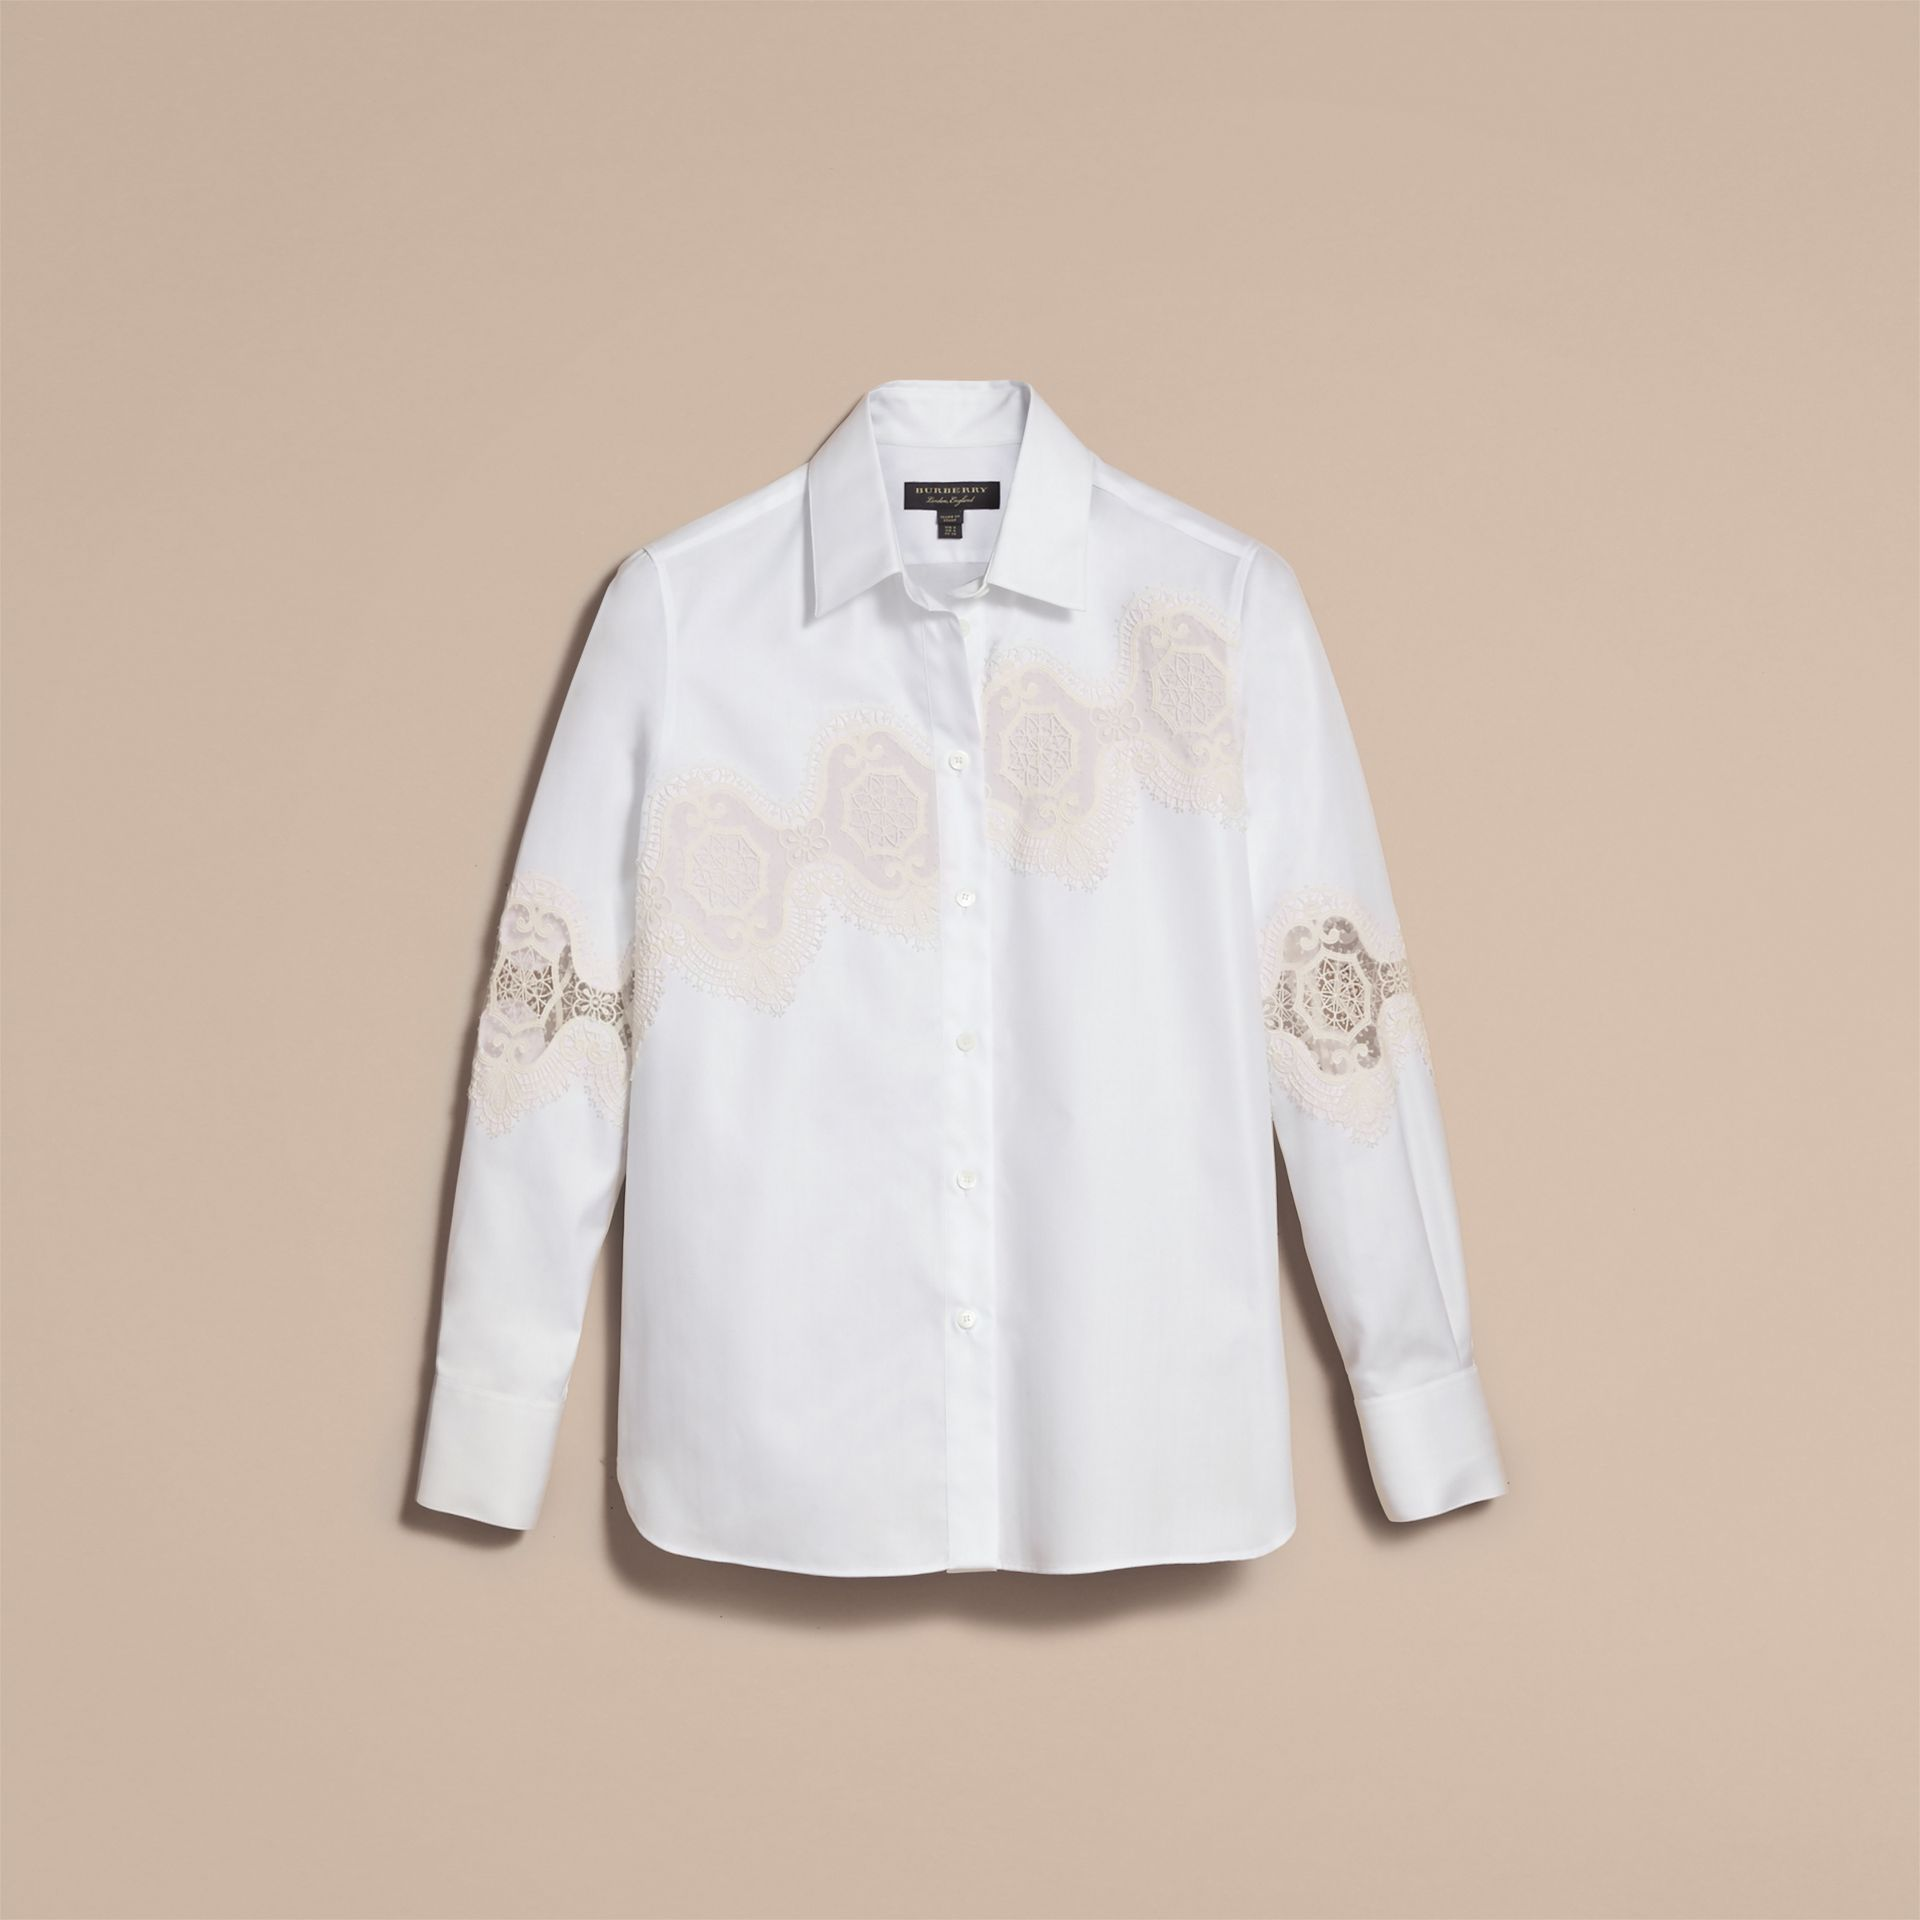 Lace Cutwork Herringbone Cotton Shirt in White - Women | Burberry - gallery image 3